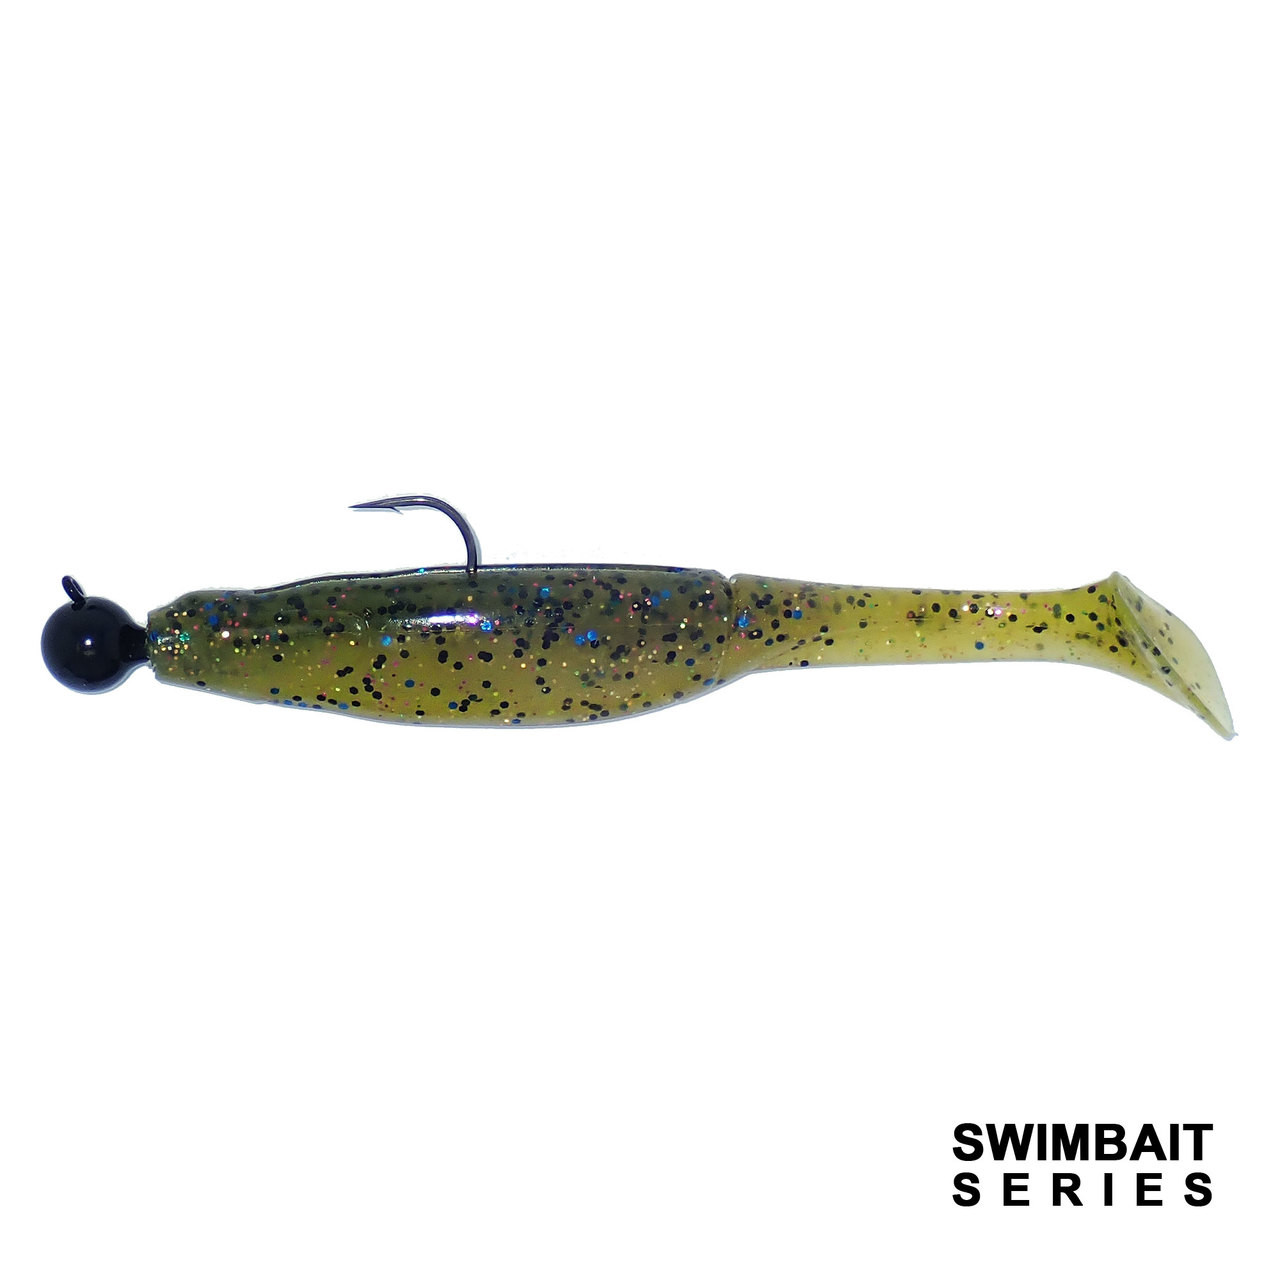 Swimbait - 4.5 inch - Bluegill (3pk)